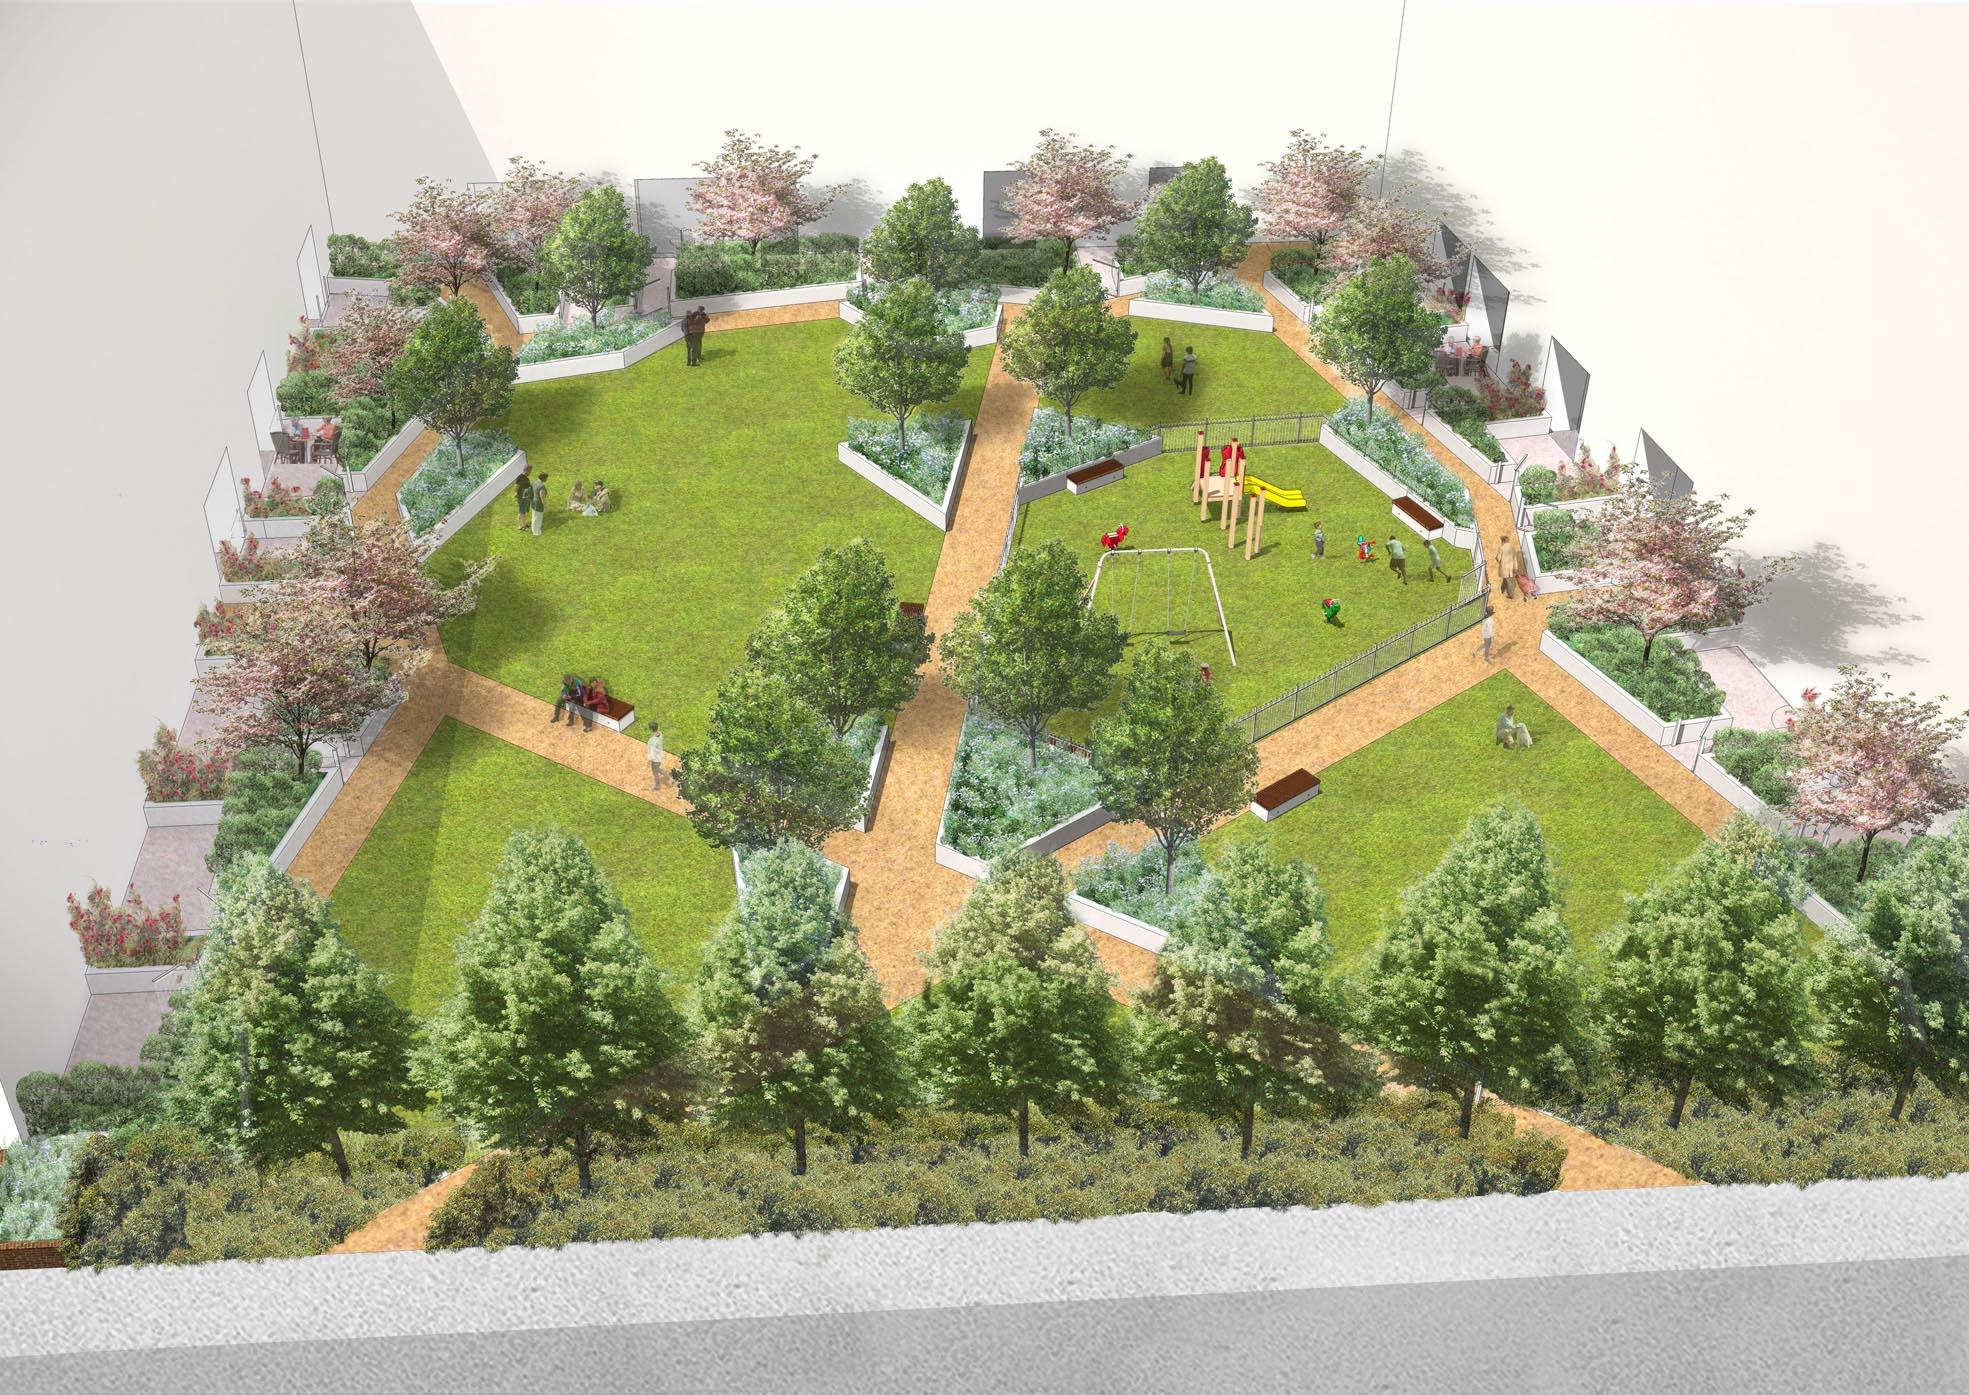 Architecture Design London davis landscape architecture - london landscape architects